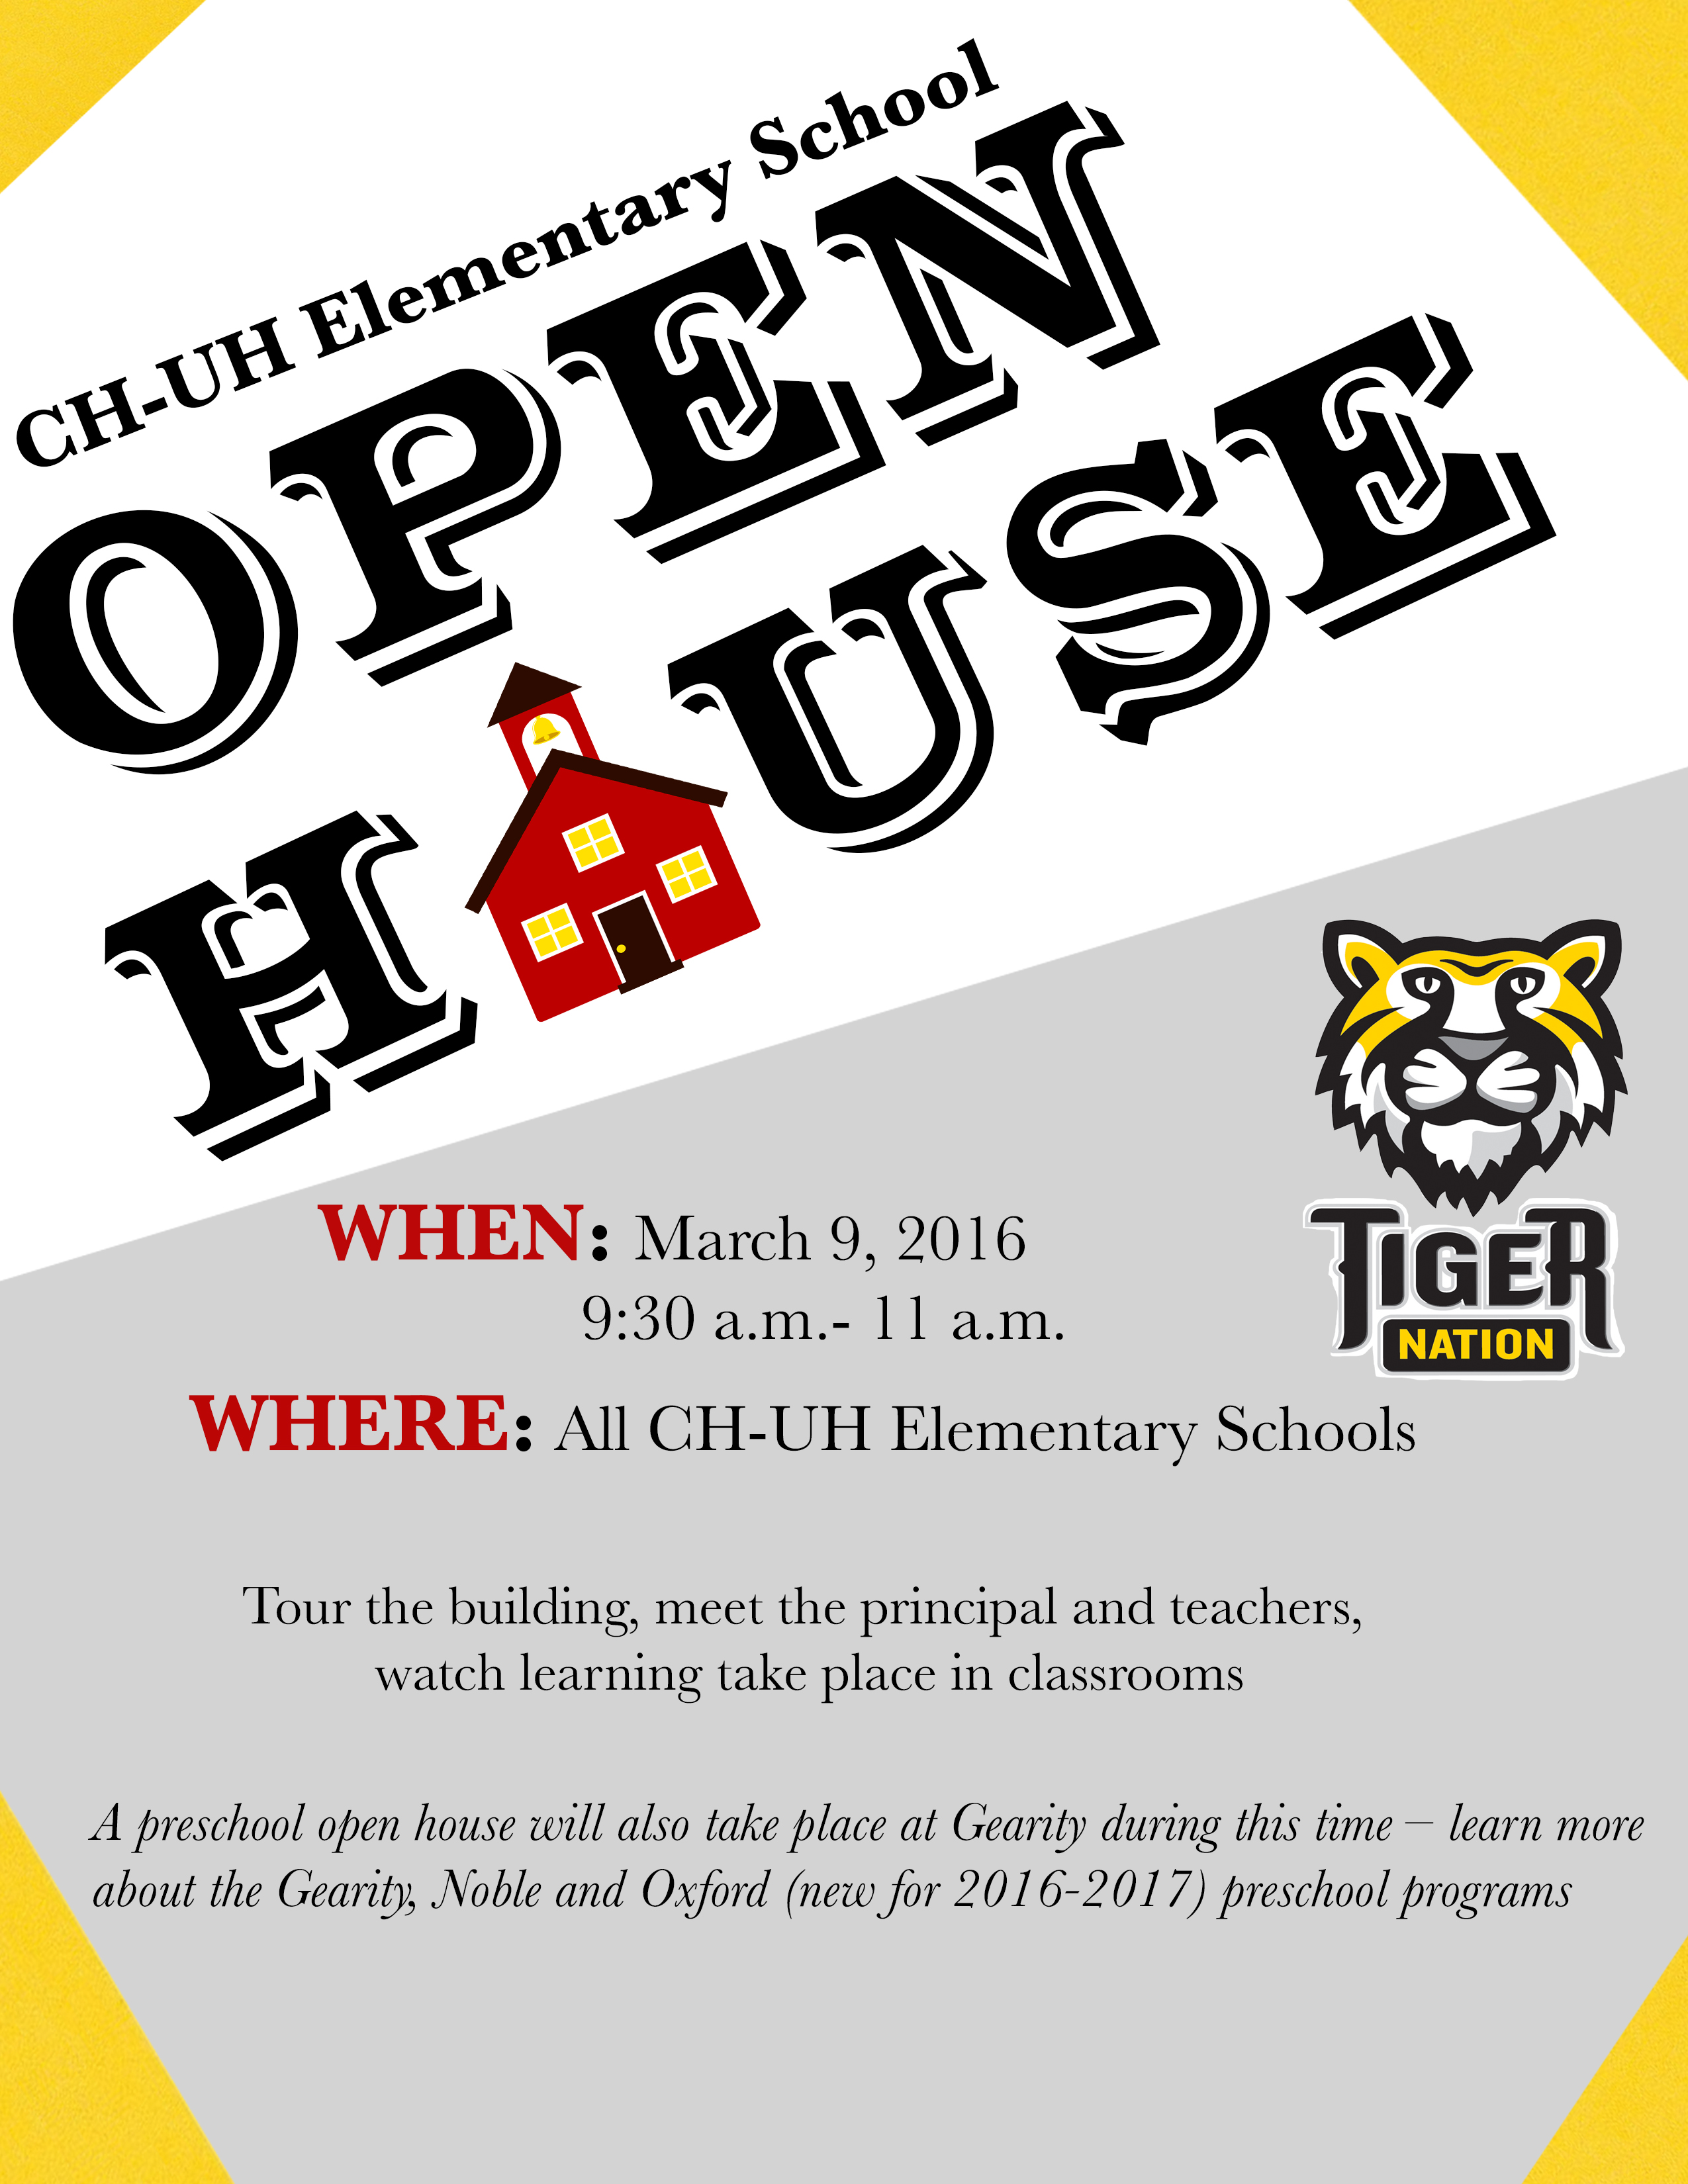 essays open house The open house culture will strengthen unity among the racial in our country while attending the open house, the guests will to mingle with other guests while attending the open house, the guests will to mingle with other guests.